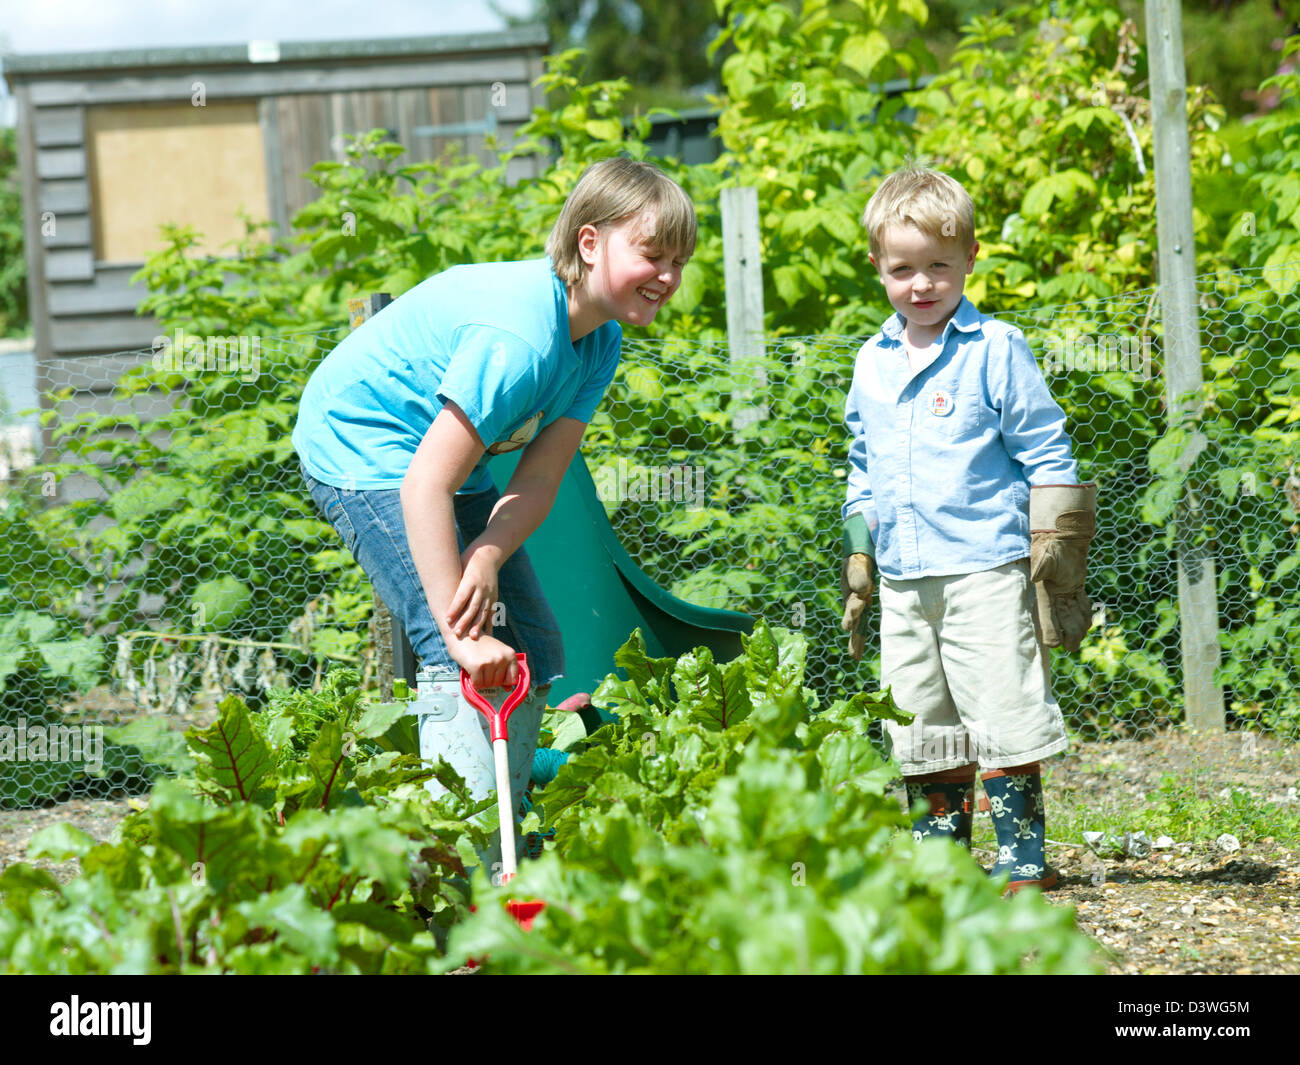 Children at the allotment - Stock Image